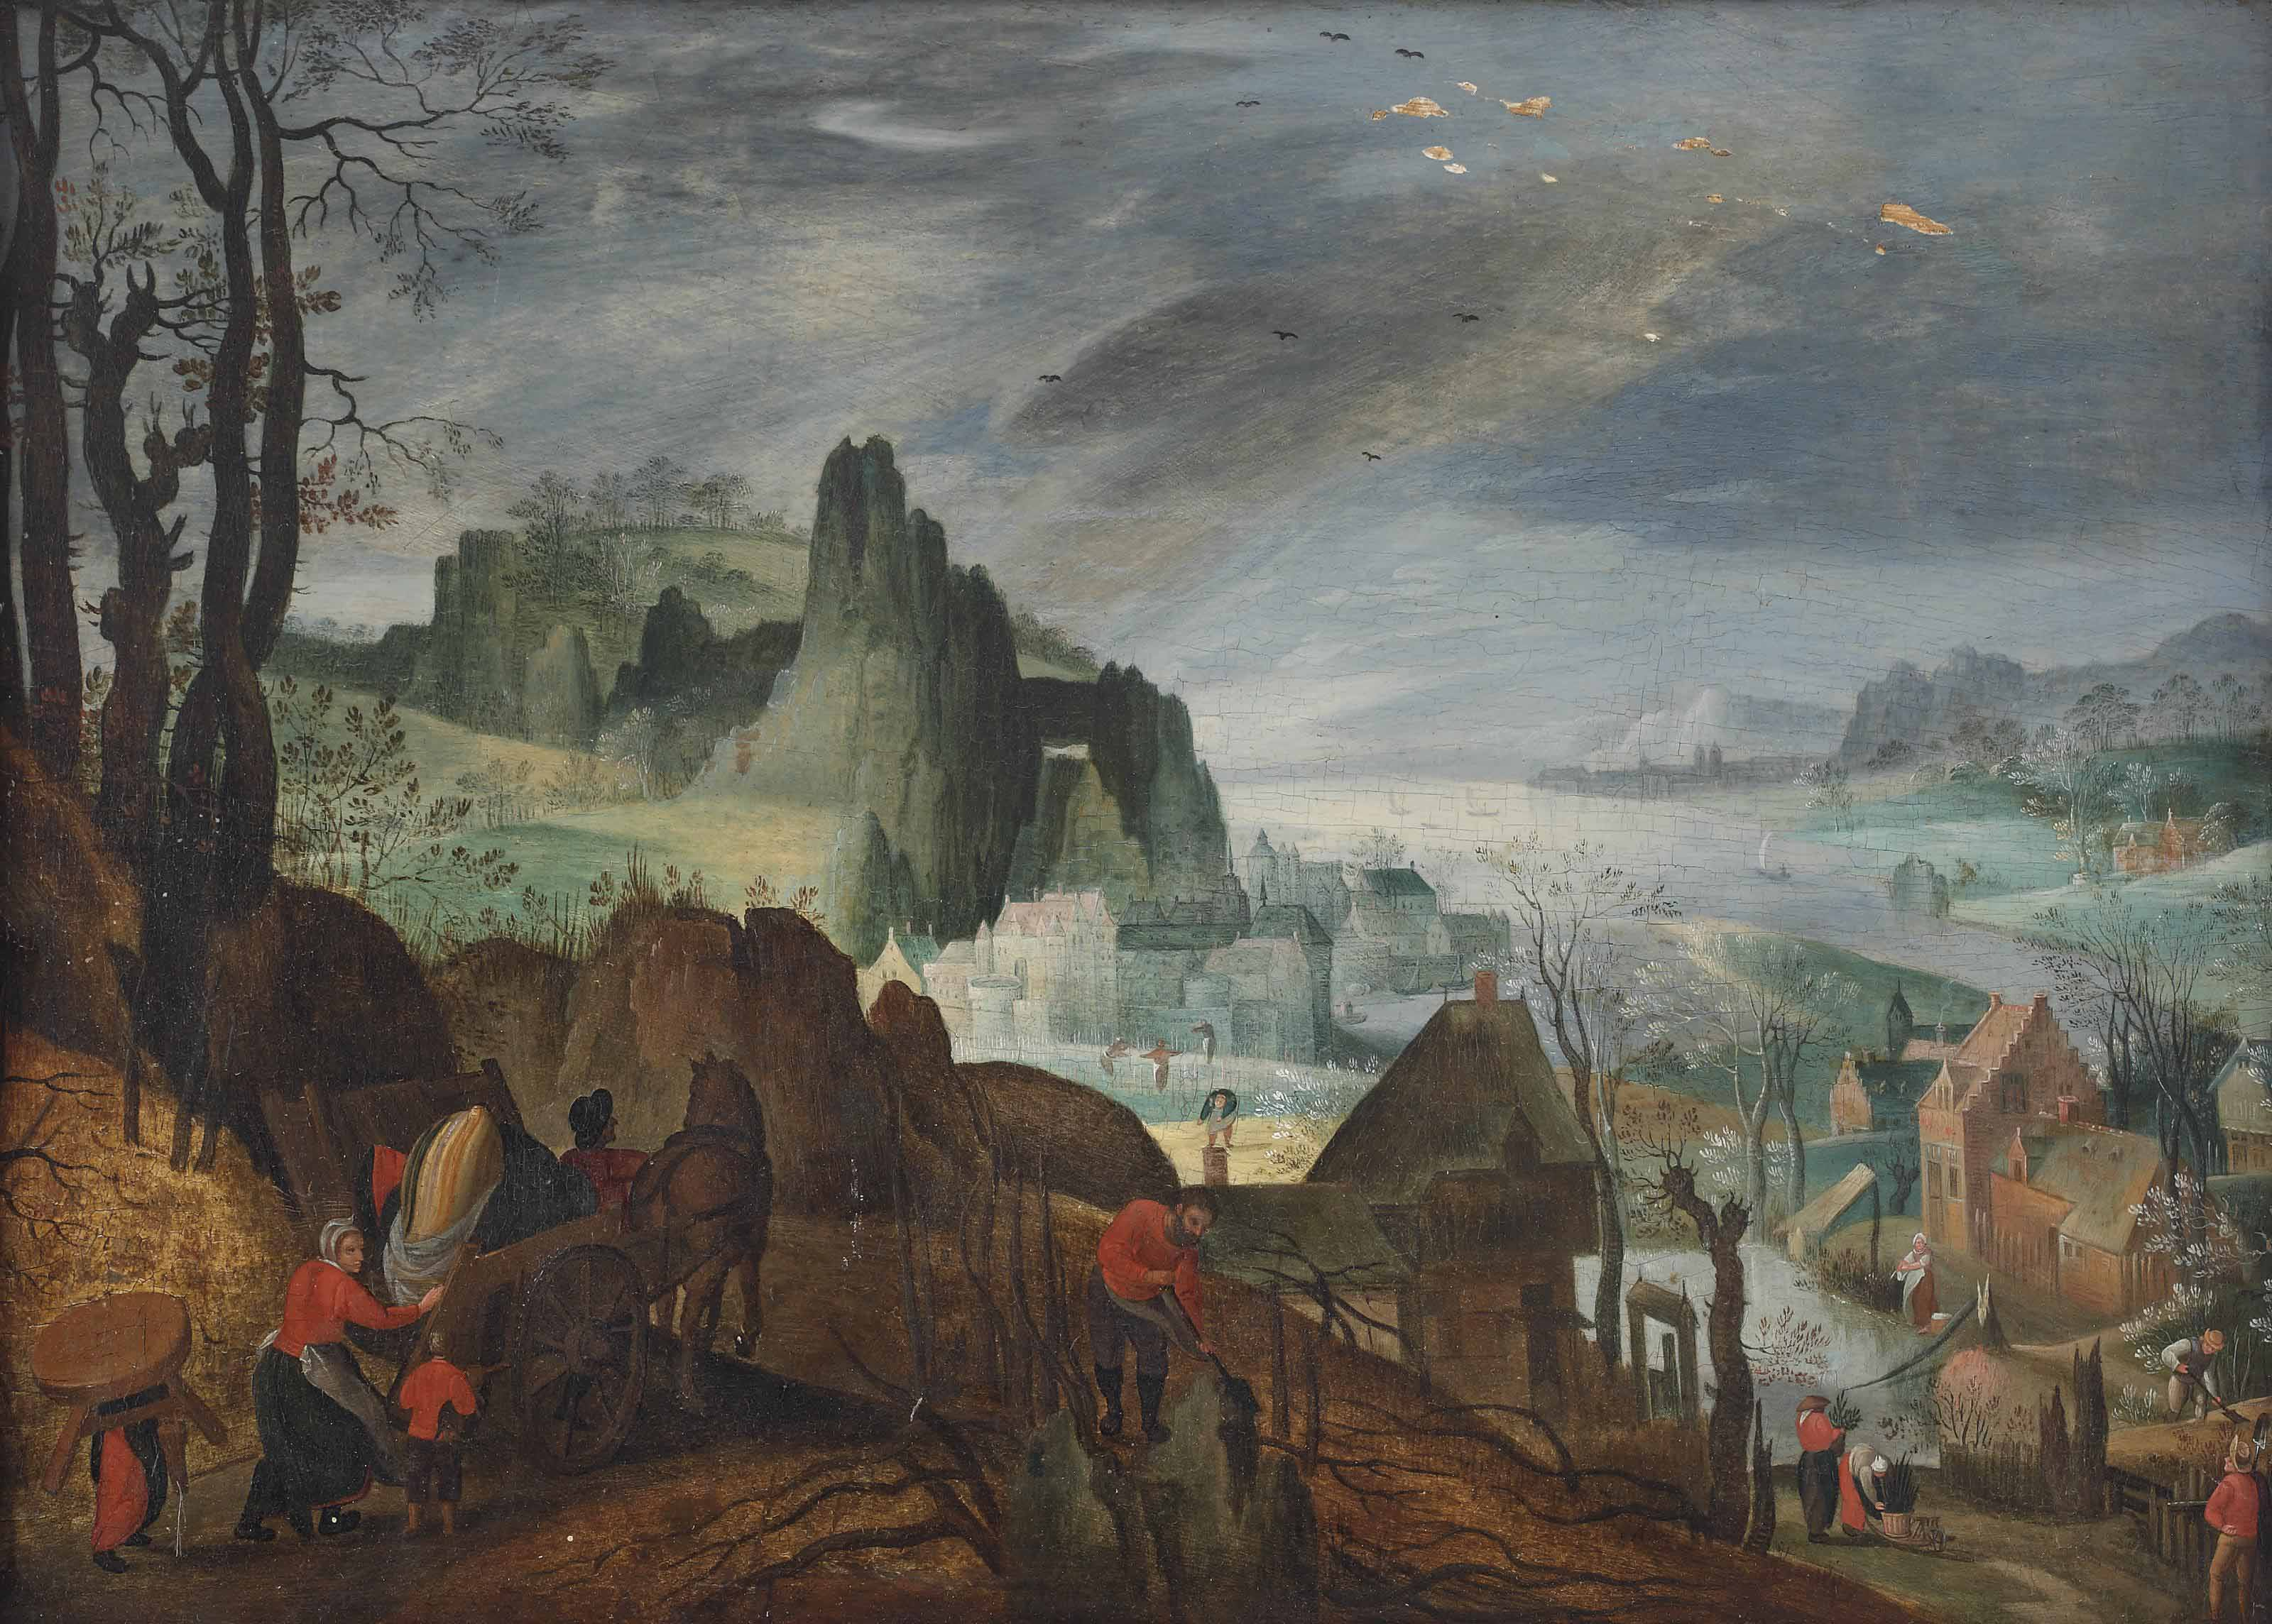 An Allegory of Spring: a rocky coastal landscape with farmers working